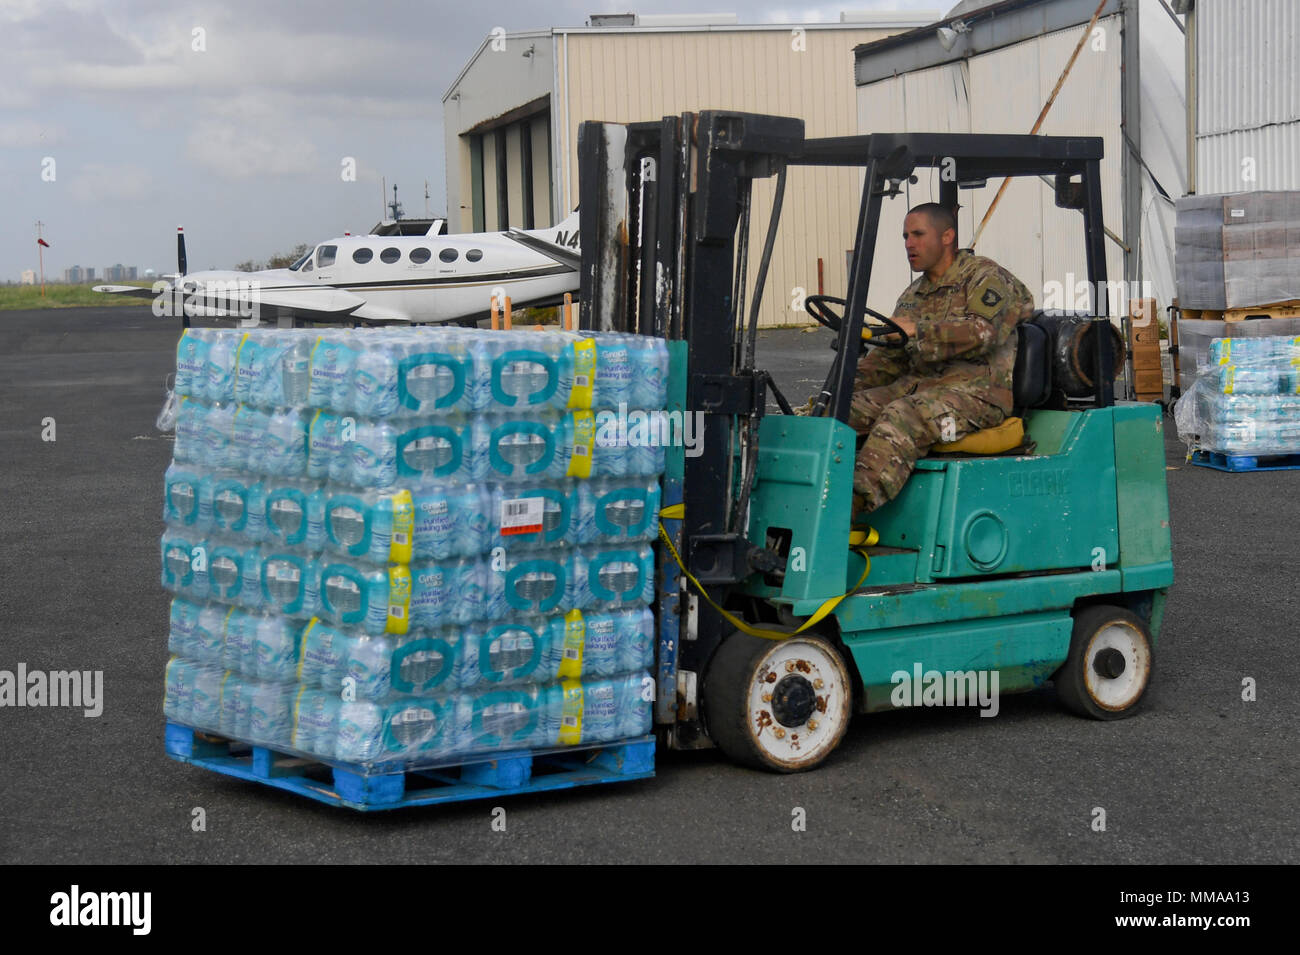 Soldiers with 6th Battalion, 101st General Support Battalion, 101st Combat Aviation Brigade, 101st Airborne Division (Air Assault) prepare to deliver food and water October 3, 2016 in San Juan, Puerto Rico. The Soldiers are supporting the relief efforts in Puerto Rico after the devastating effects of Hurricane Maria. (U.S. Army Photo by Sgt. Marcus Floyd, 101st Combat Aviation Brigade) - Stock Image